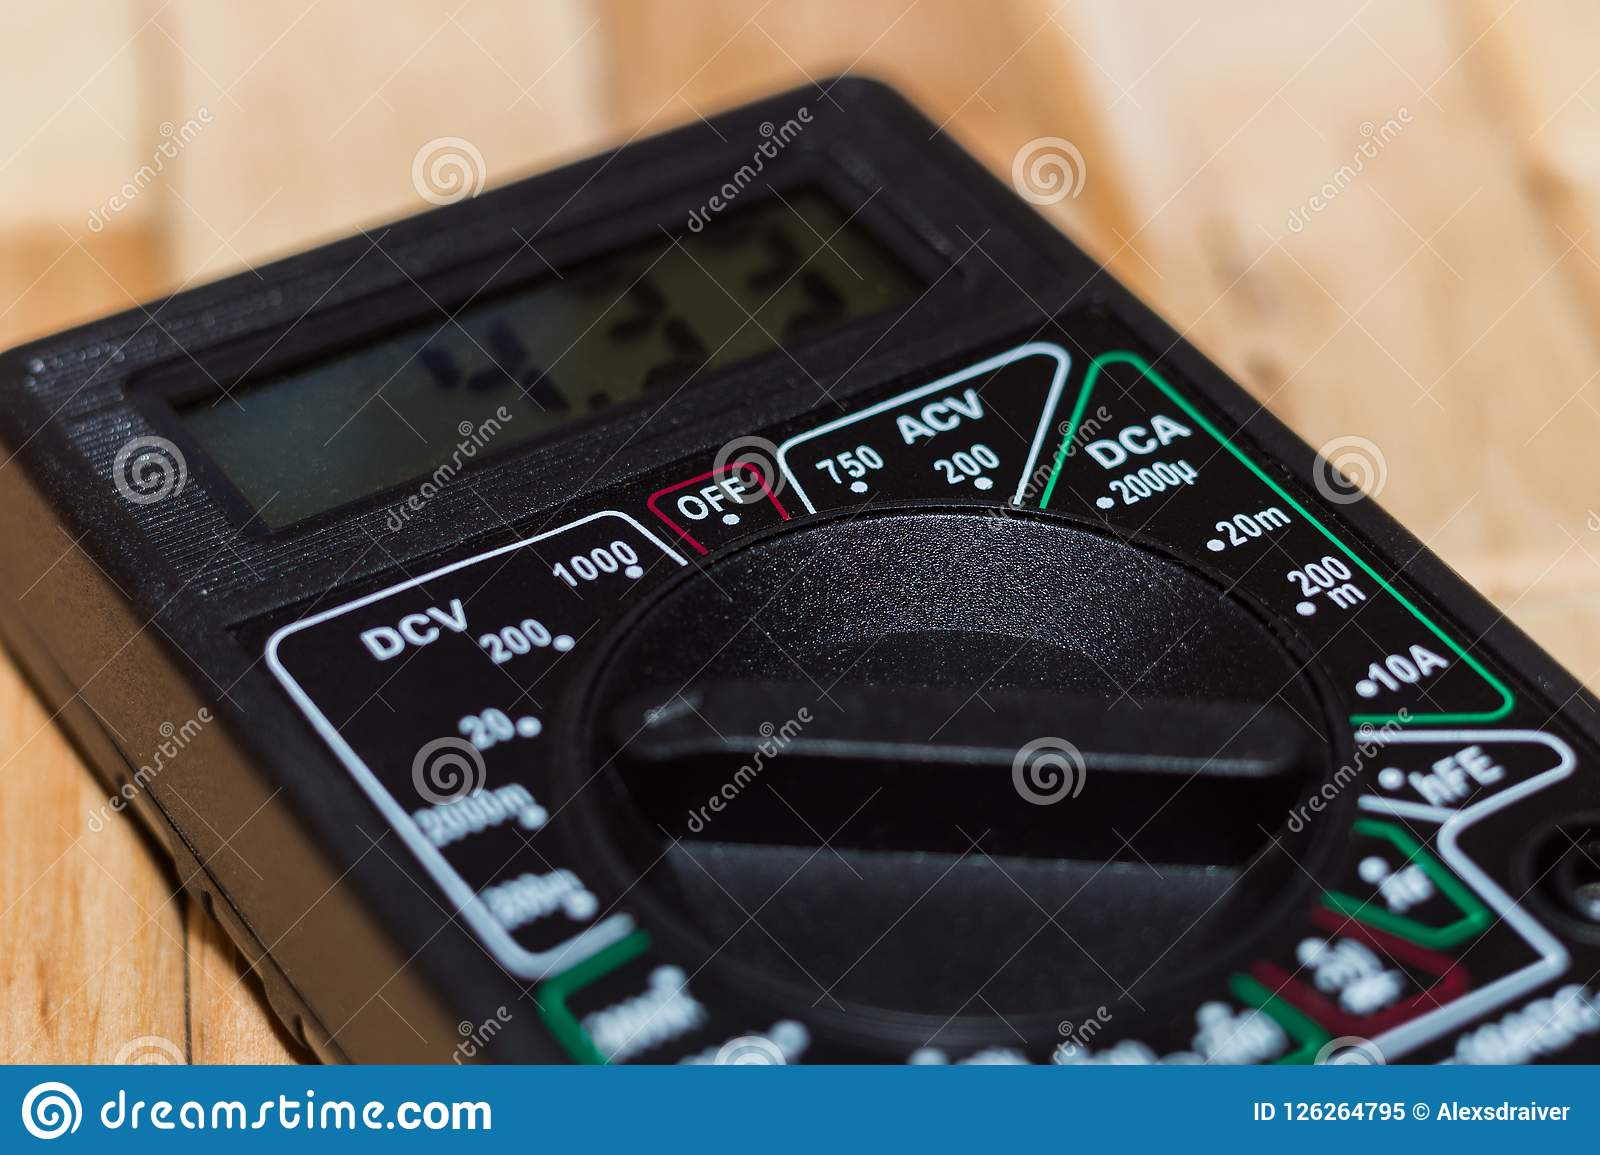 Digital measuring multimeter on wooden floor. It shows 4.33V or fully charged battery. Includes voltmeter, ampermeter, ohmmeter